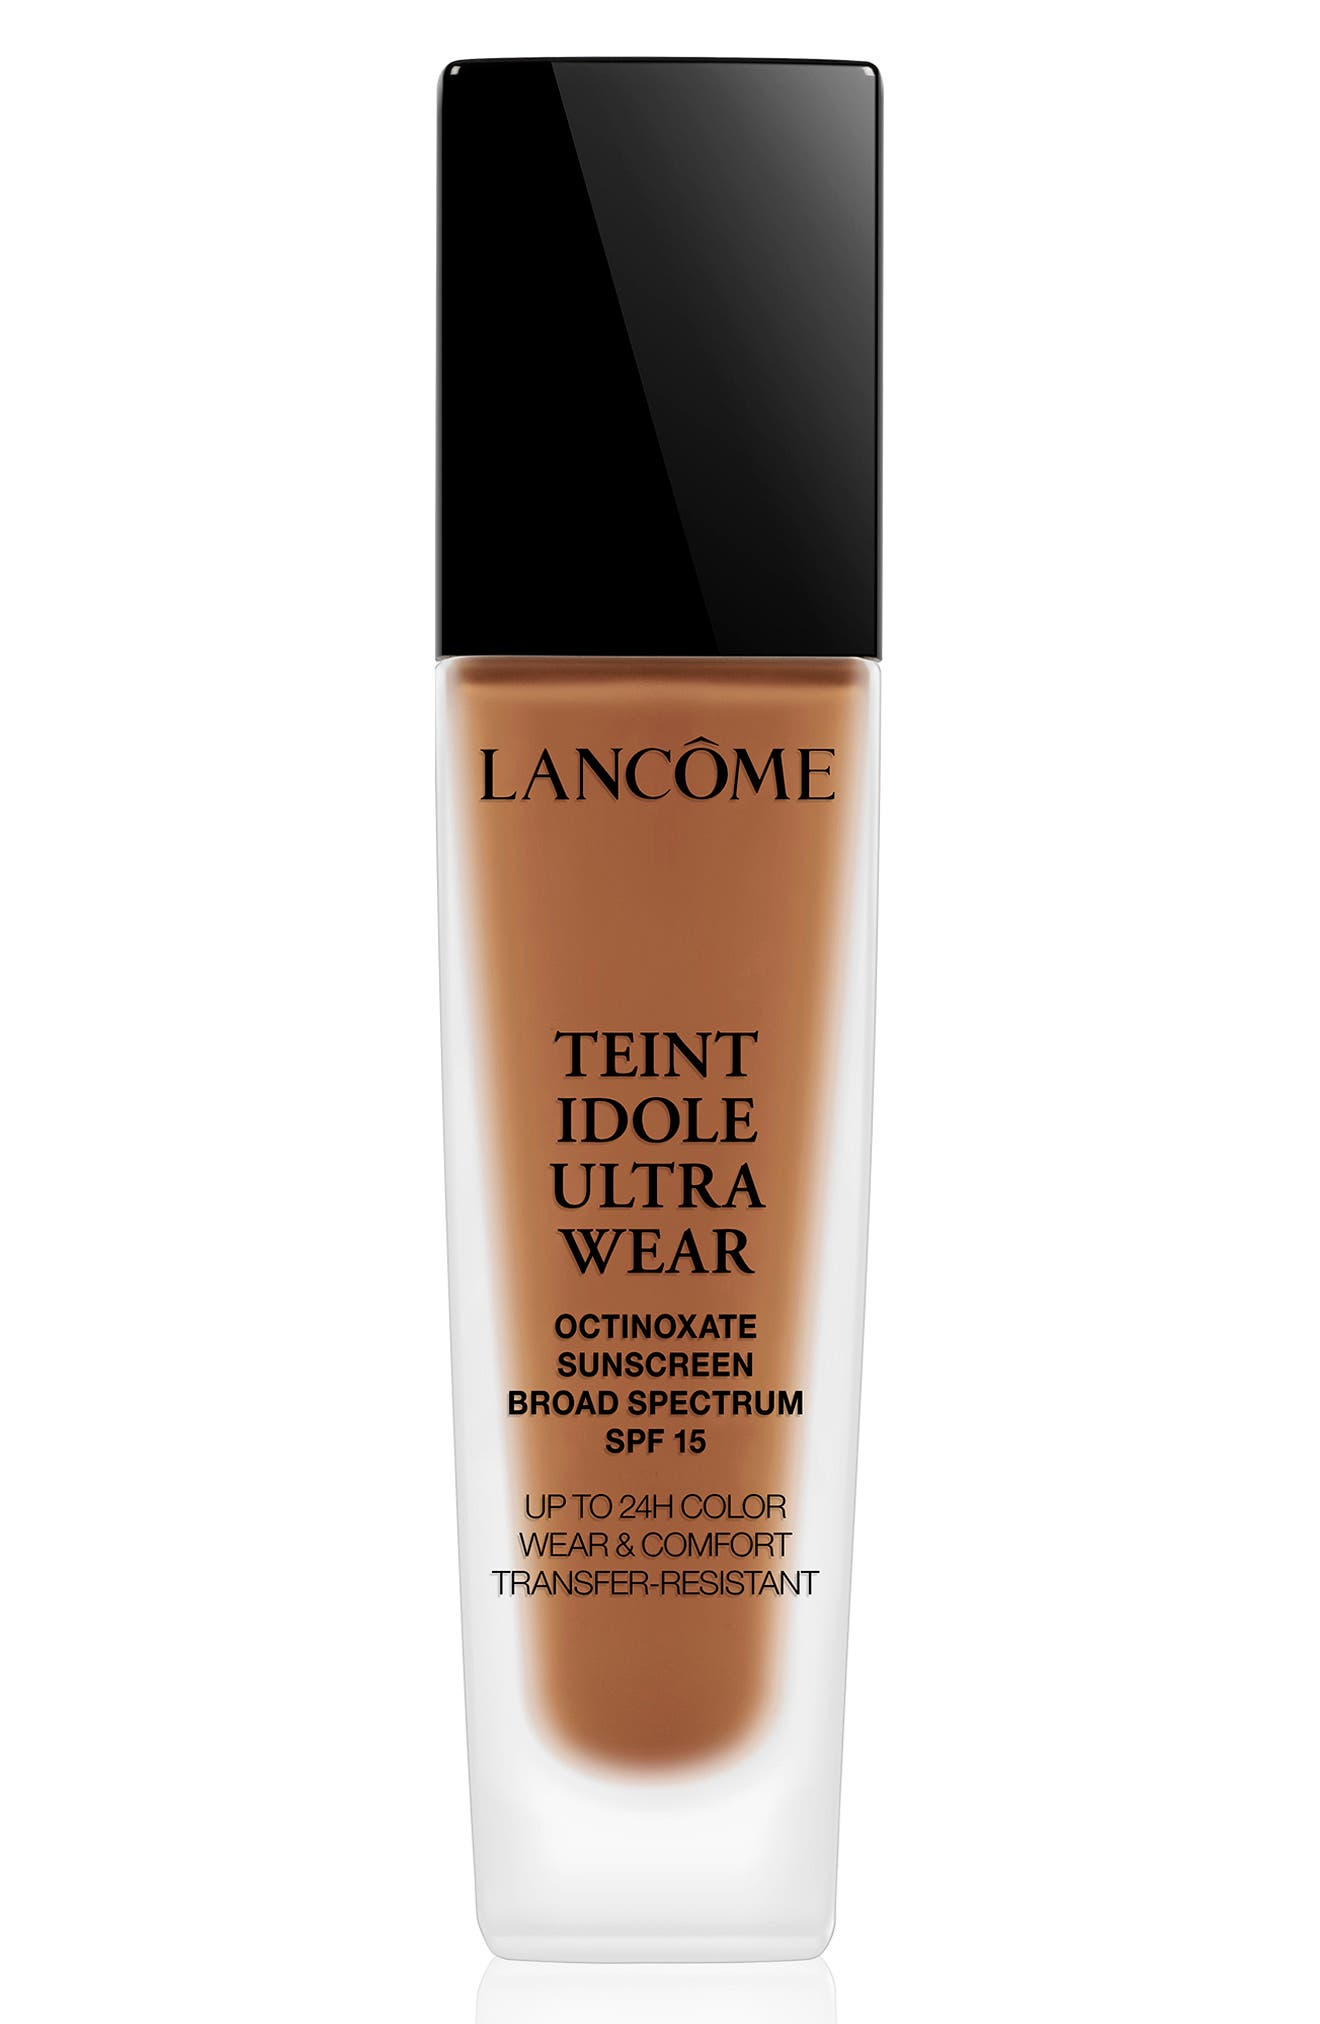 Teint Idole Ultra Liquid 24 H Longwear Spf 15 Foundation by LancÔme